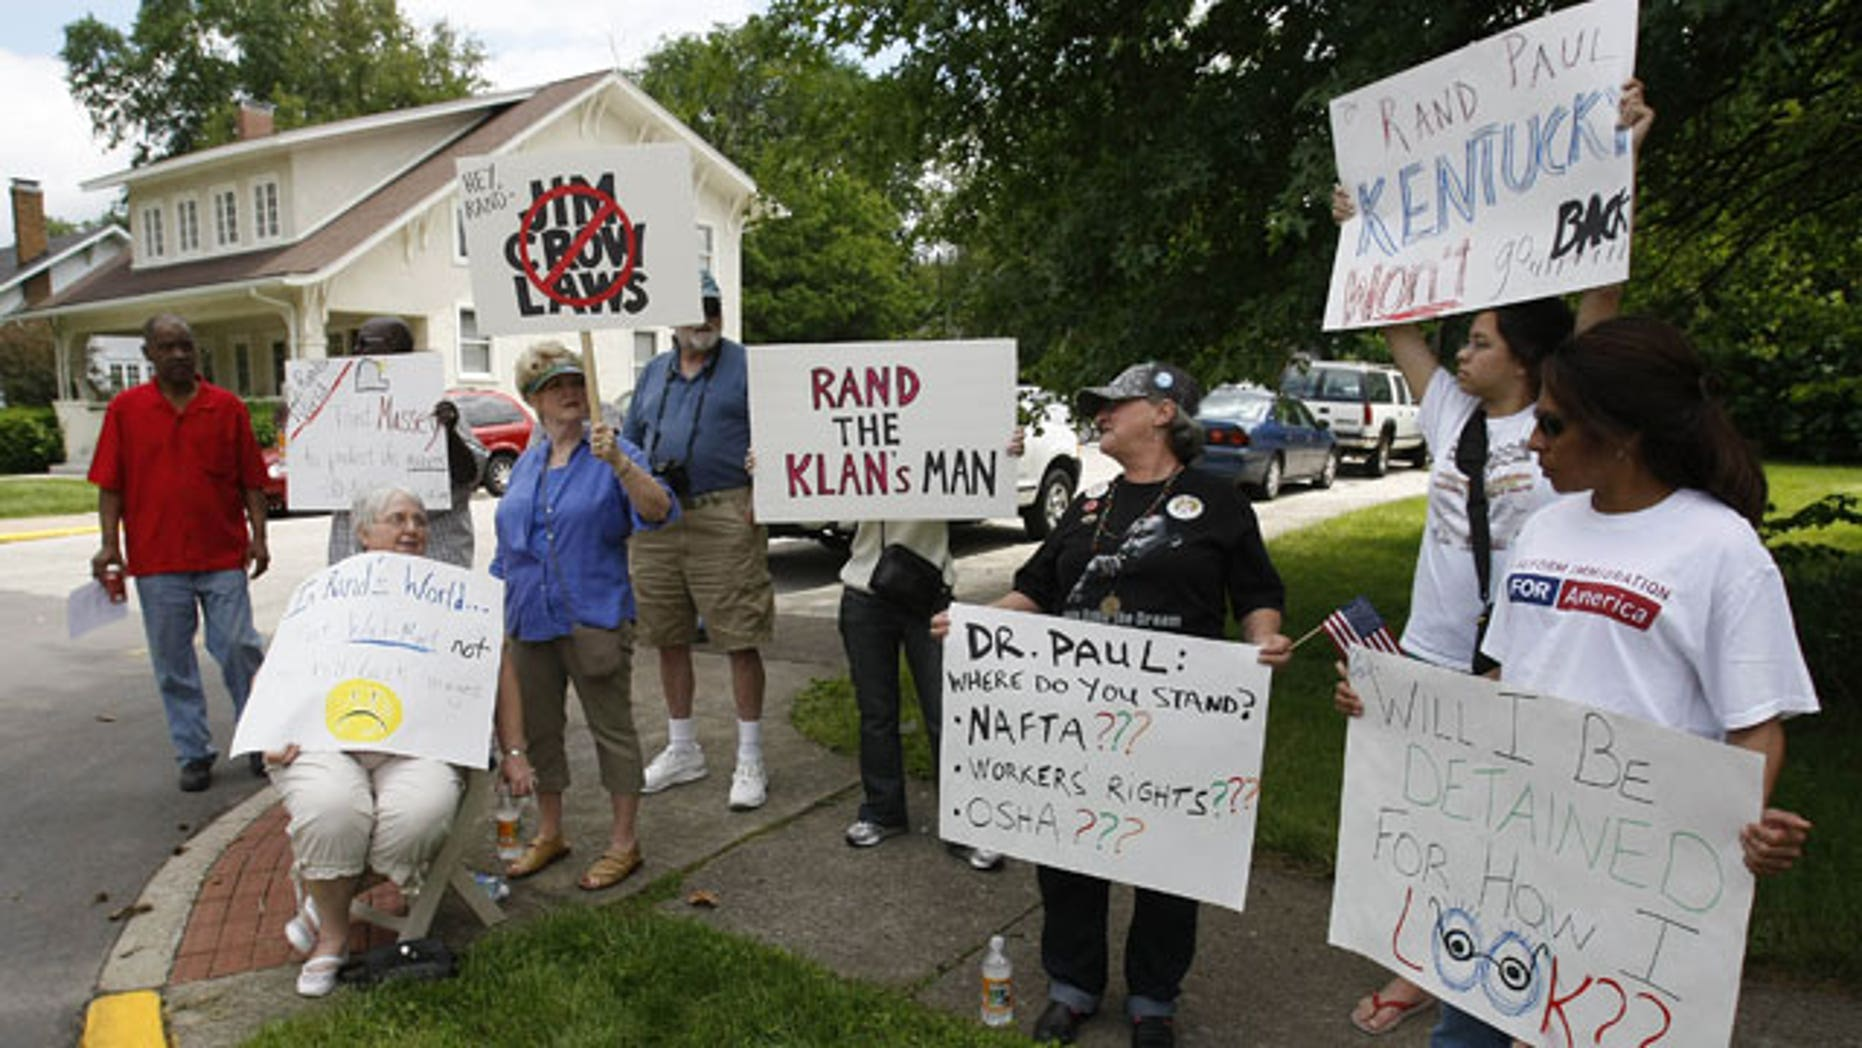 May 22: Demonstrators hold signs across the street from a Republican party unity rally in Frankfort, Ky.